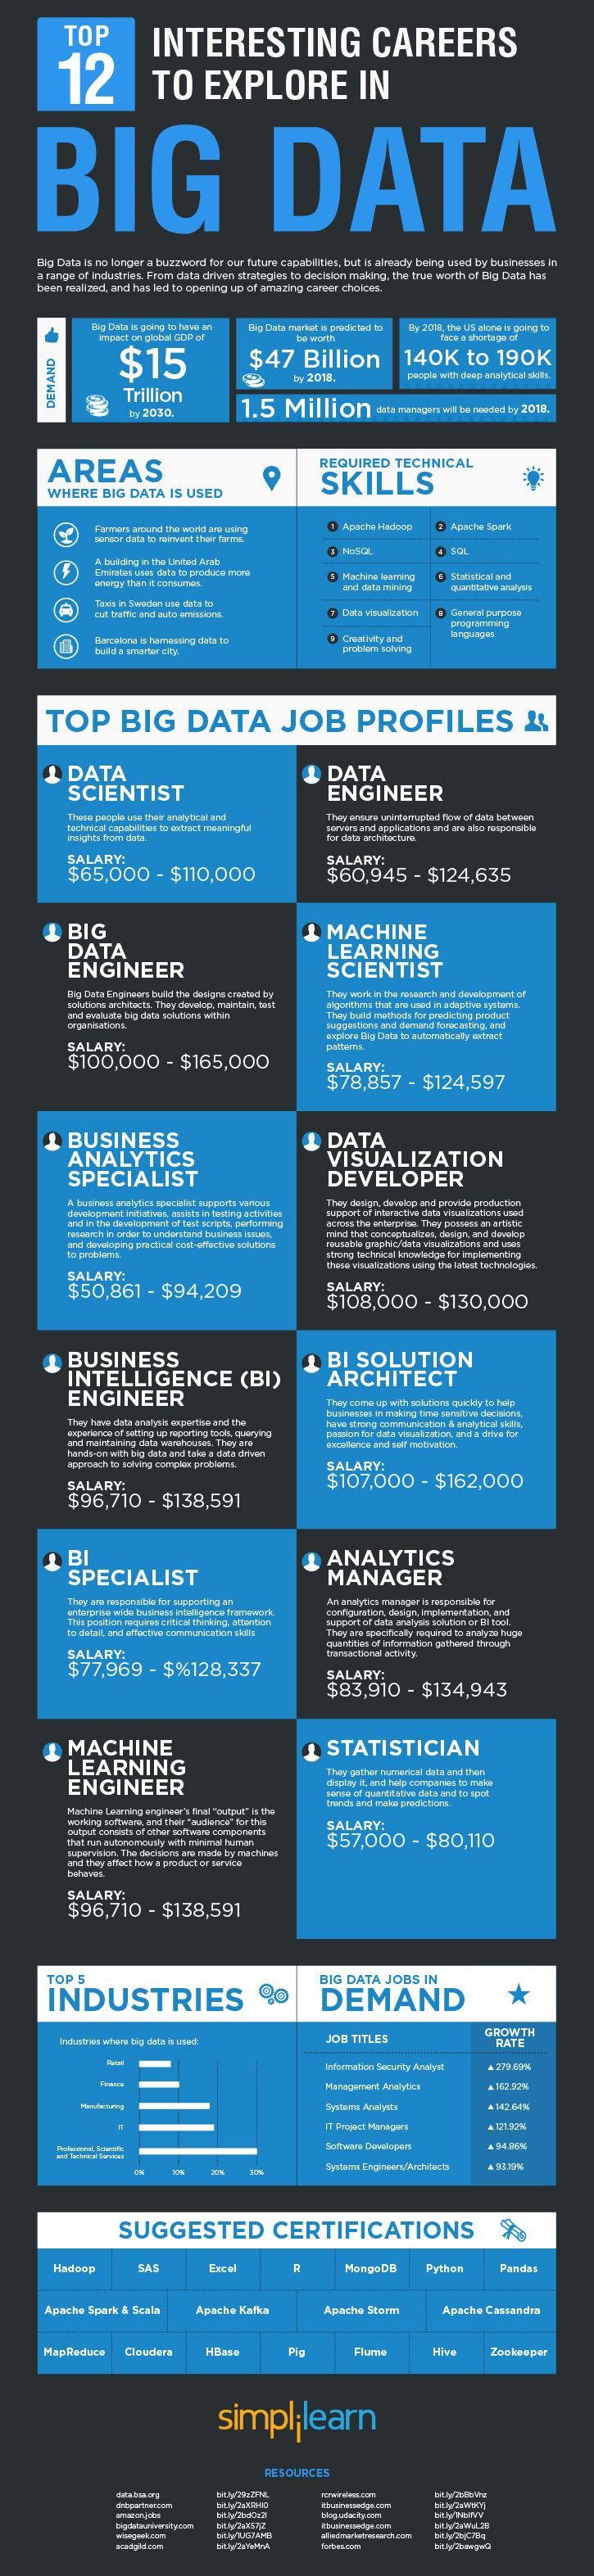 top-12-interesting-careers-to-explore-in-bigdata-2016-725px